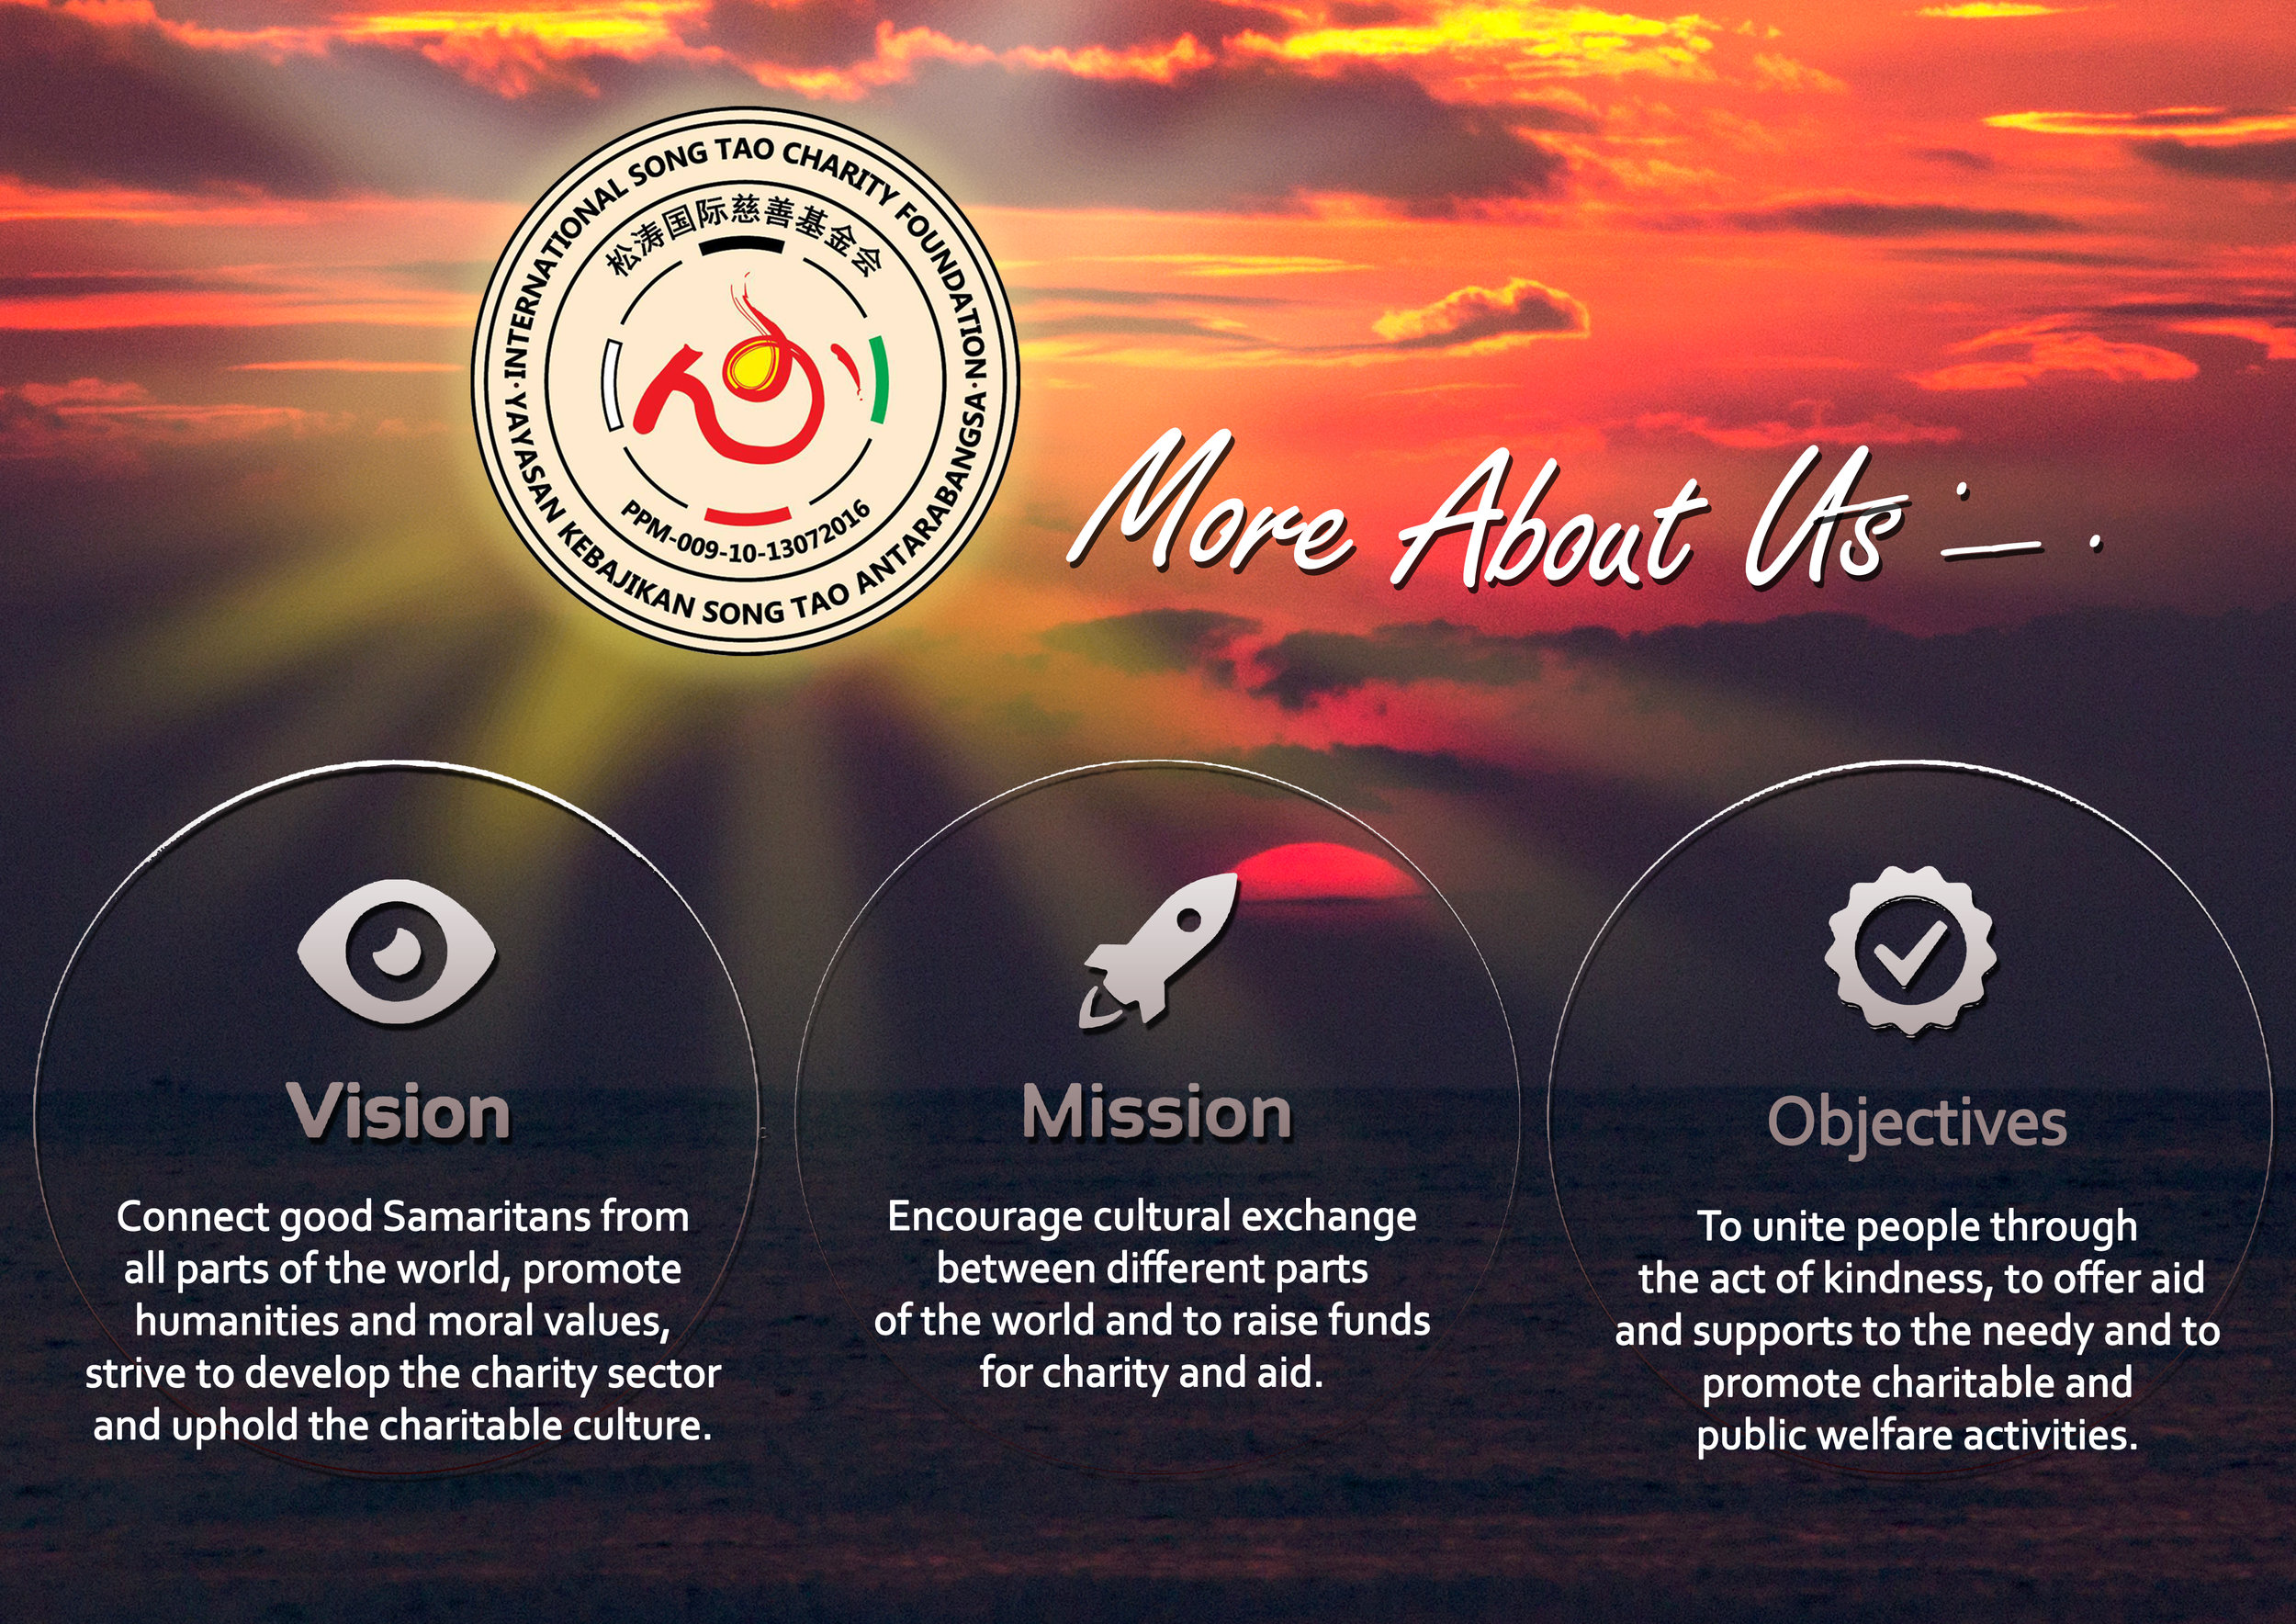 Our Vision, Mission and Objectives of International Song Tao Charity Foundation.